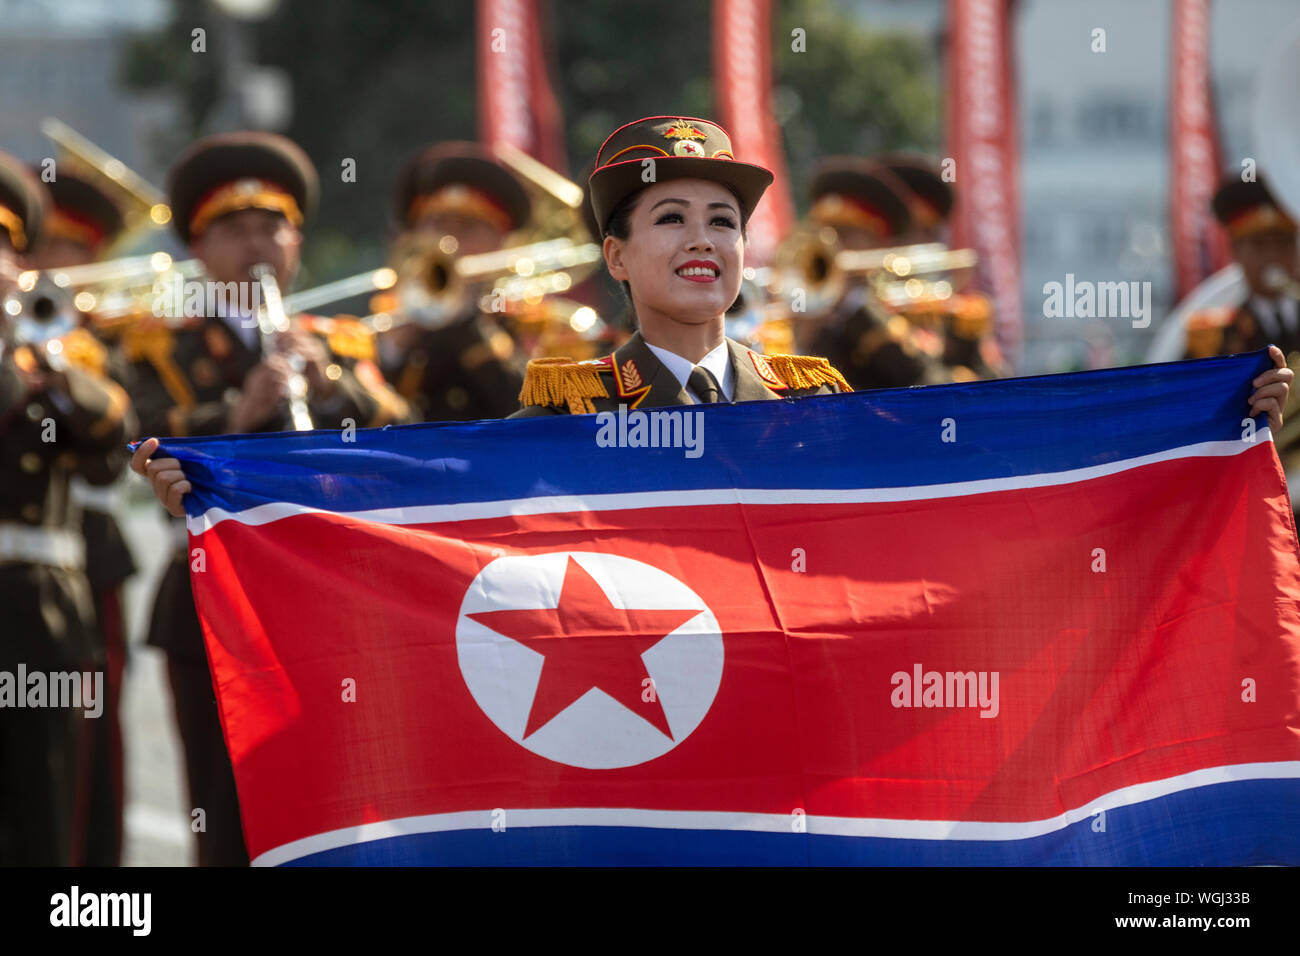 The Military Band of the North Korean People's Army perform during the 12th Spasskaya Tower International Military Music Festival in Moscow Stock Photo